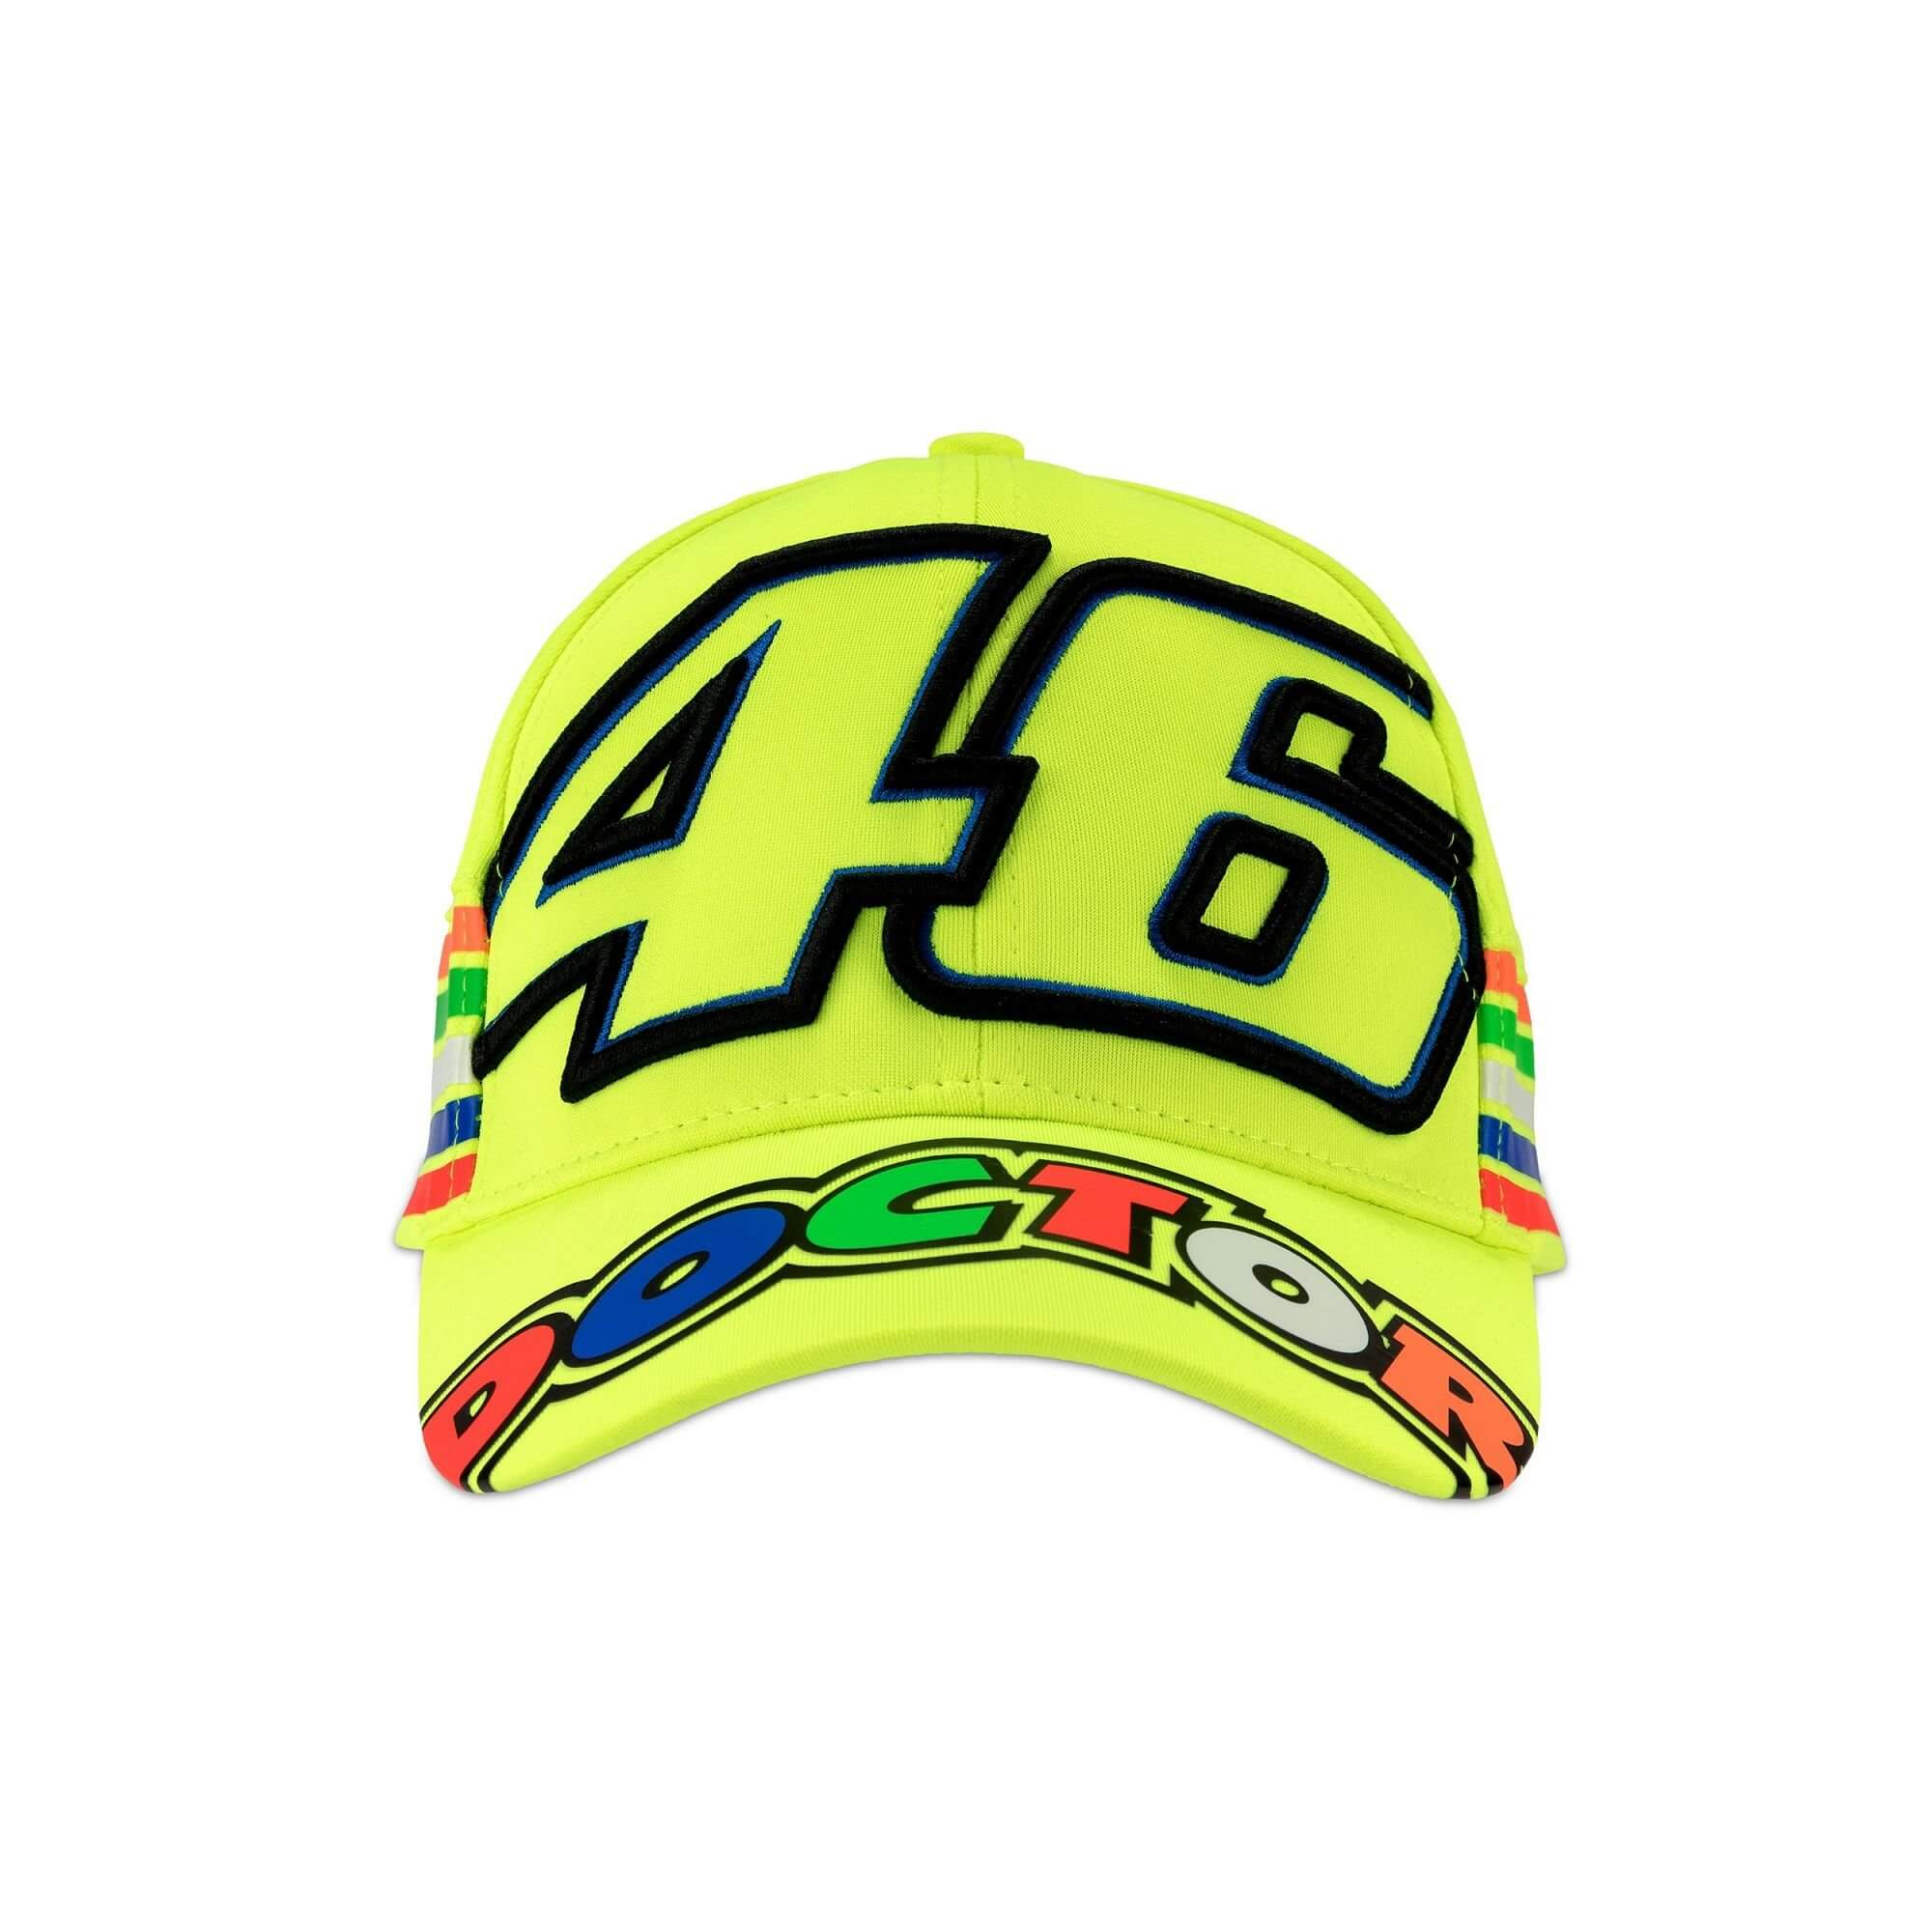 vr 46 valentino rossi stripes baseball cap vr305028. Black Bedroom Furniture Sets. Home Design Ideas